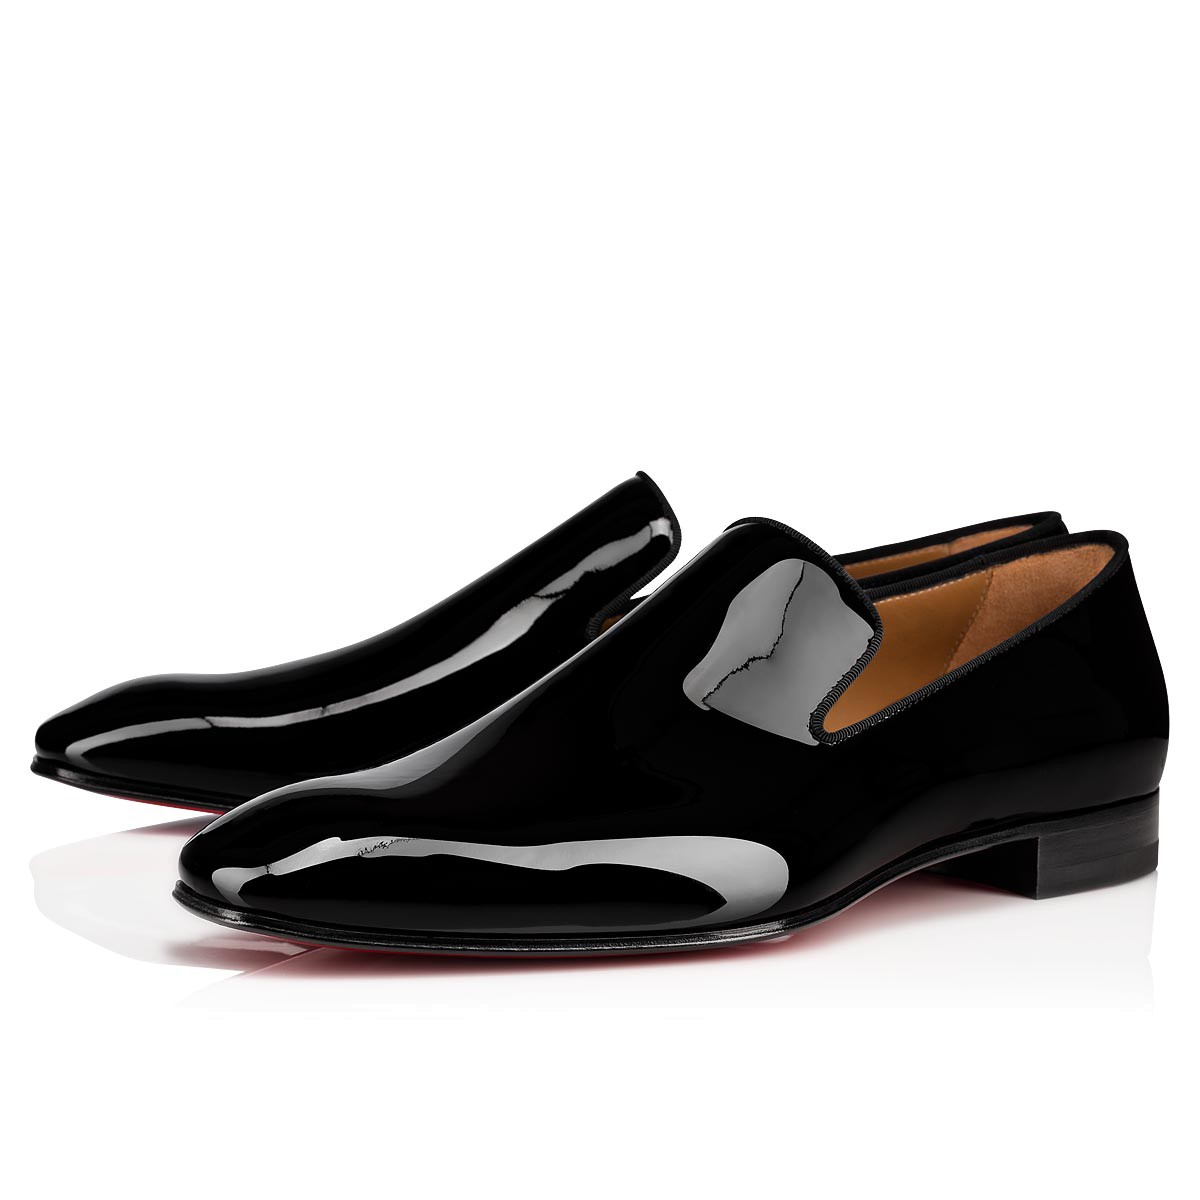 0c5c53ae7a0d Dandelion Flat Black Patent Leather - Men Shoes - Christian Louboutin